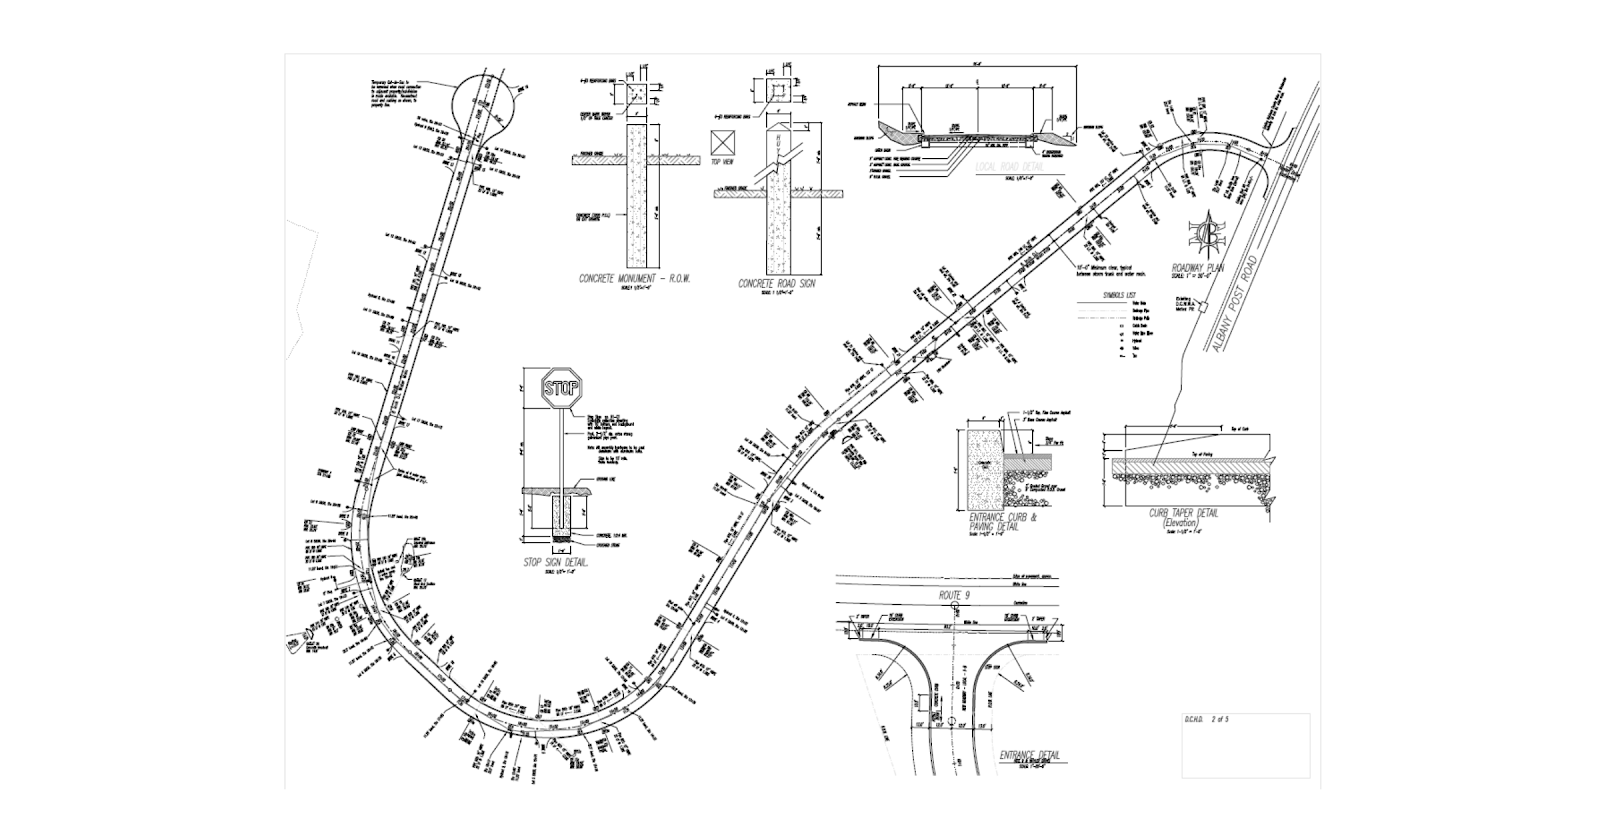 An engineering road drawing showing different types of road supports and sign arrangments.